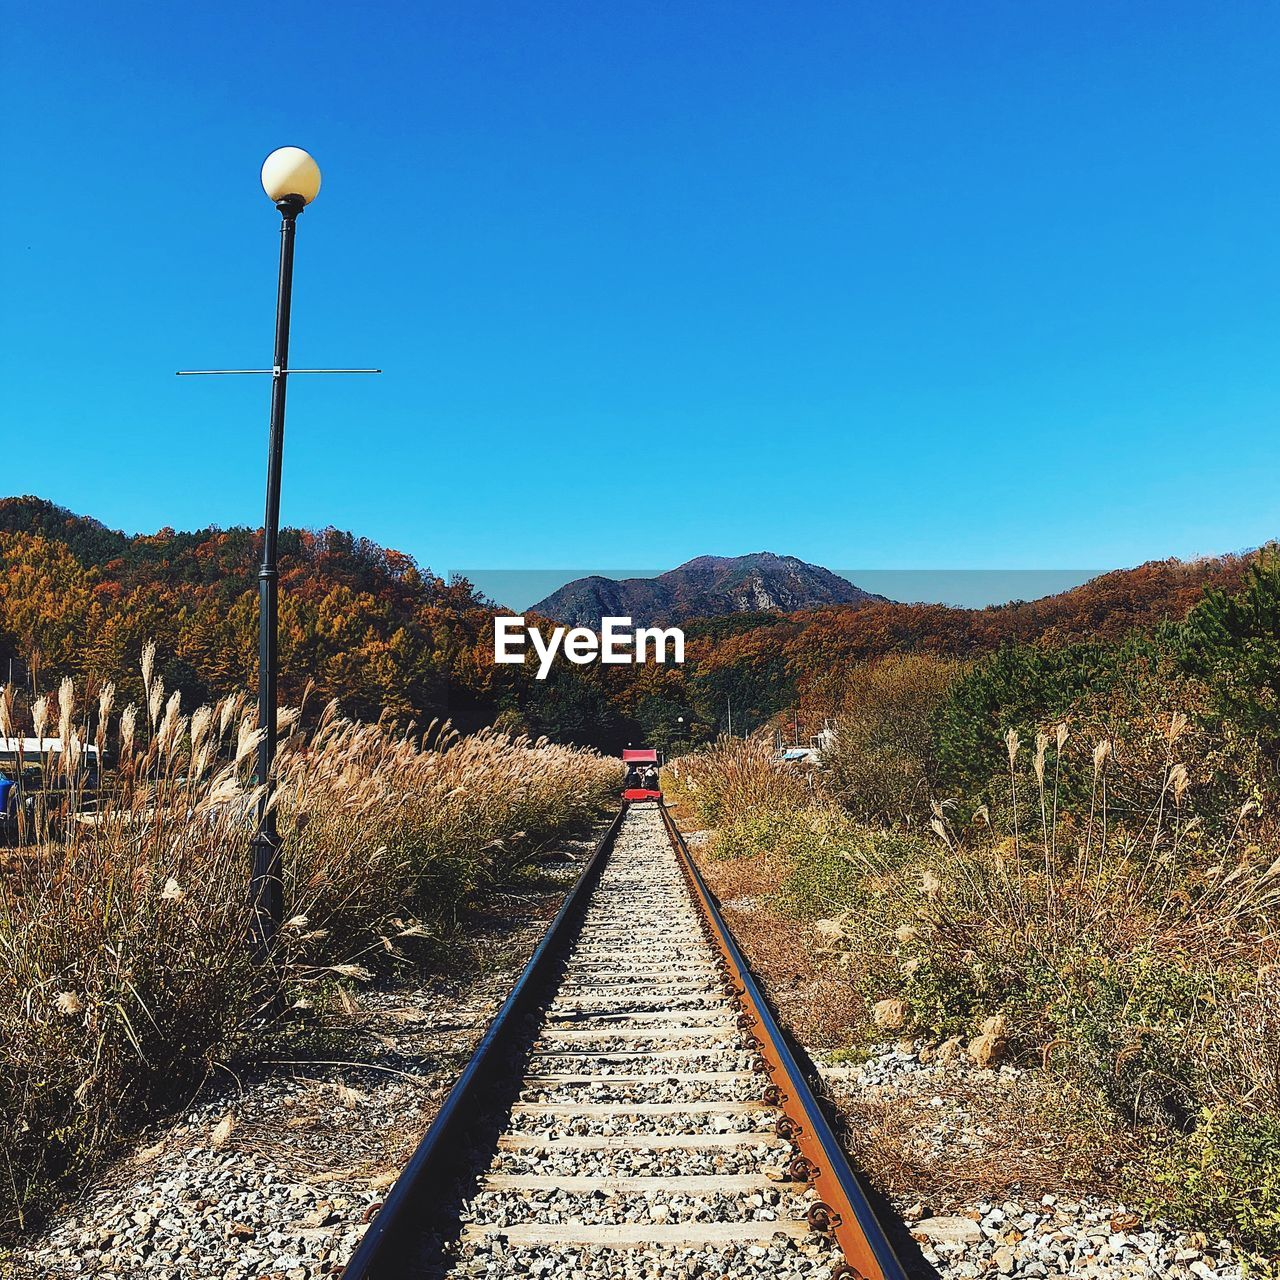 sky, mountain, the way forward, direction, railroad track, track, rail transportation, nature, clear sky, transportation, beauty in nature, blue, scenics - nature, landscape, plant, diminishing perspective, tranquility, no people, environment, day, outdoors, long